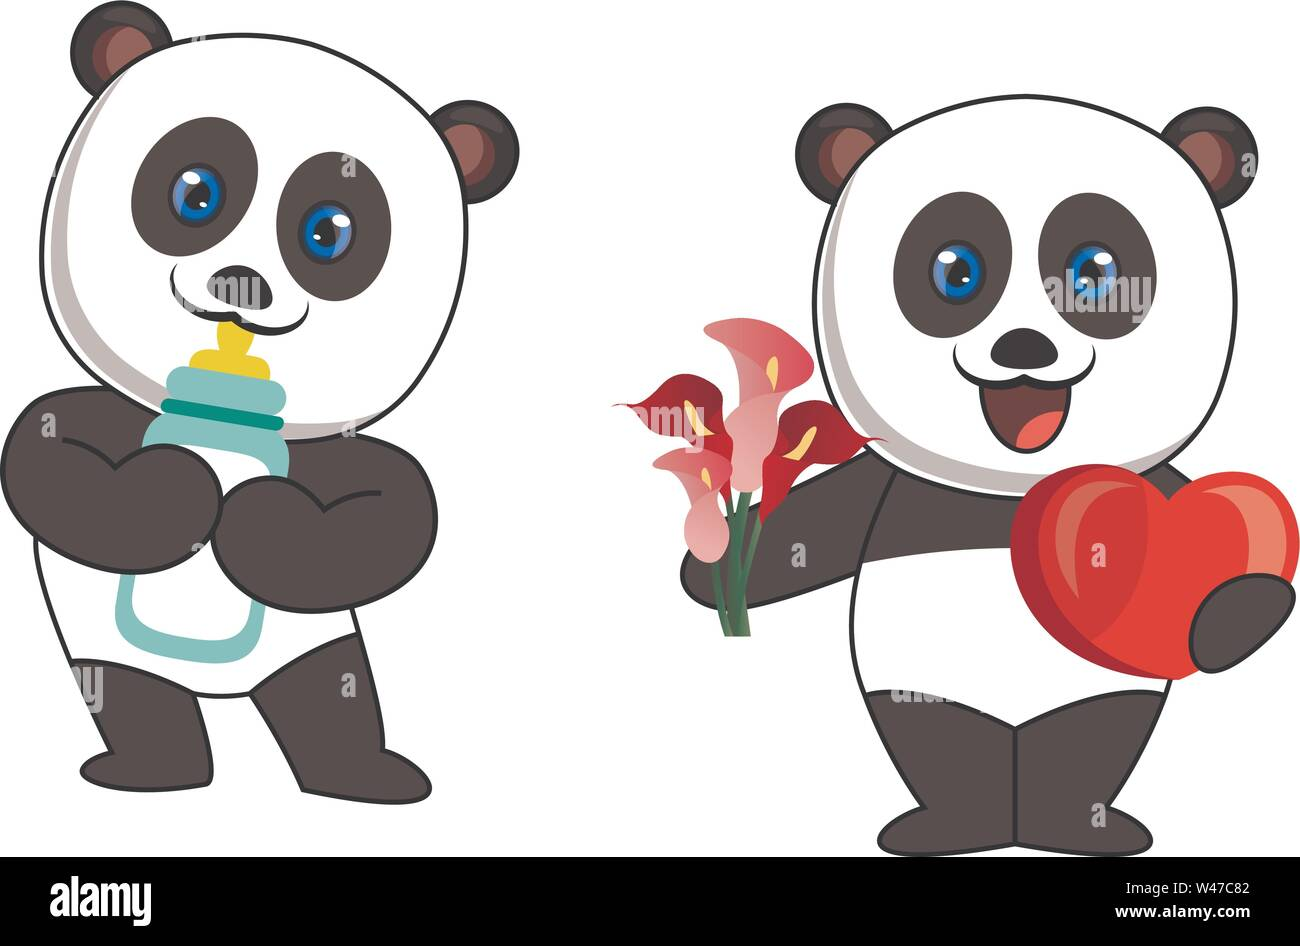 Pandas with milk and flowers, illustration, vector on white background. - Stock Image